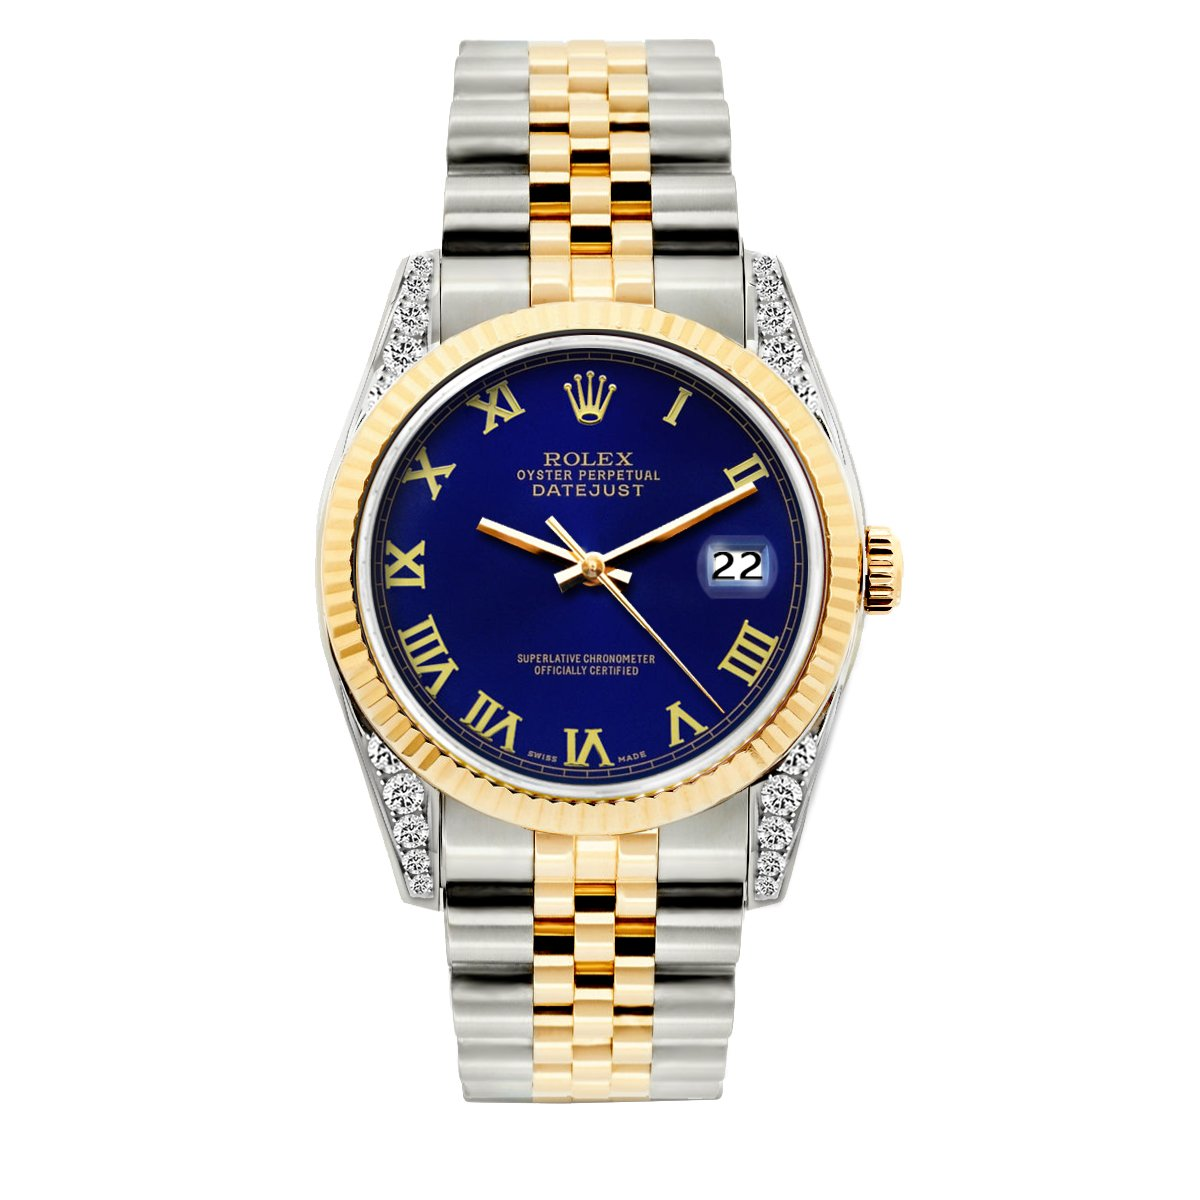 Rolex Datejust Diamond Watch, 36mm, Yellow Gold and Stainless Steel Bracelet Royal Blue Dial w/ Diamond Lugs